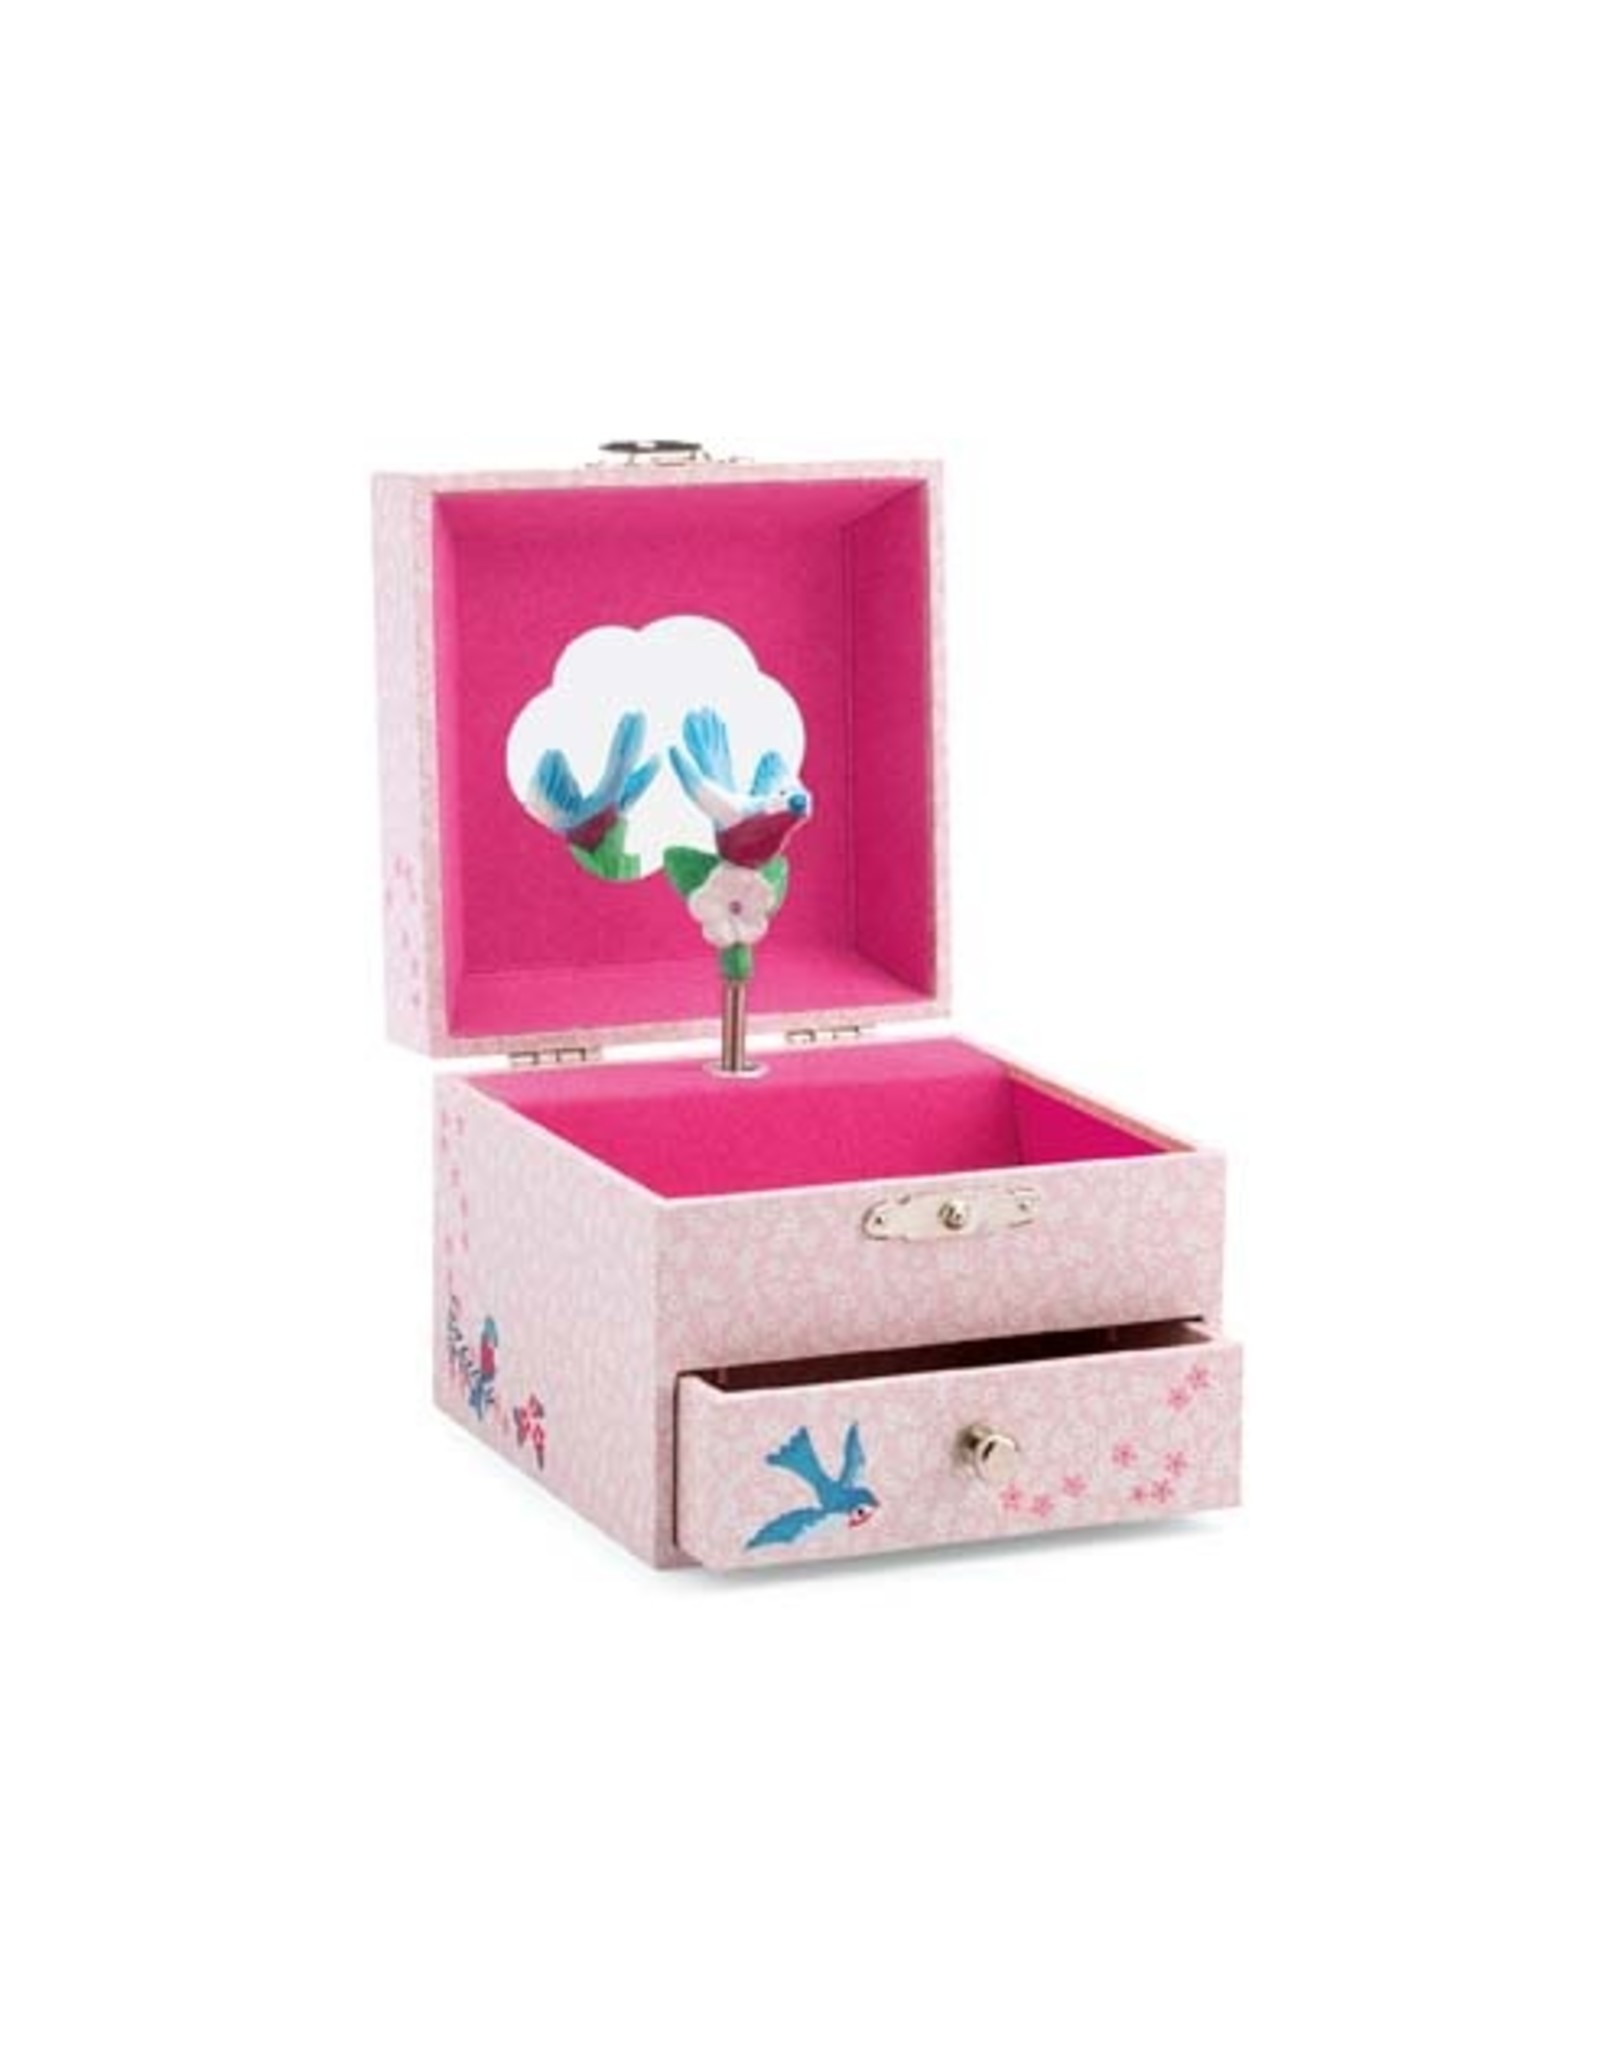 Djeco Music Box/Jewelry Box, Finch's Melody